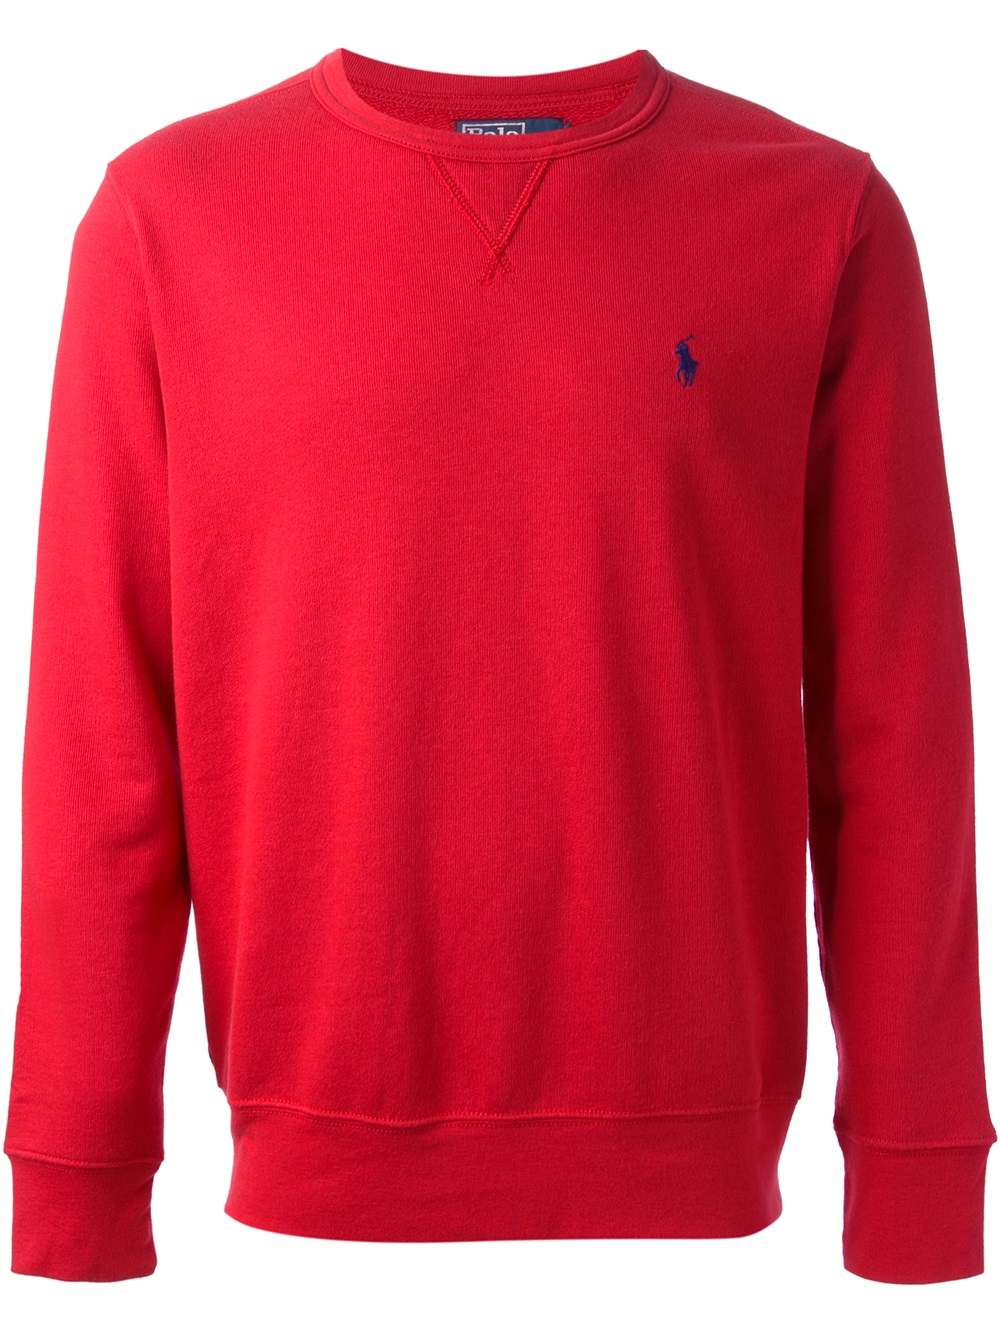 lyst polo ralph lauren classic sweatshirt in red for men. Black Bedroom Furniture Sets. Home Design Ideas